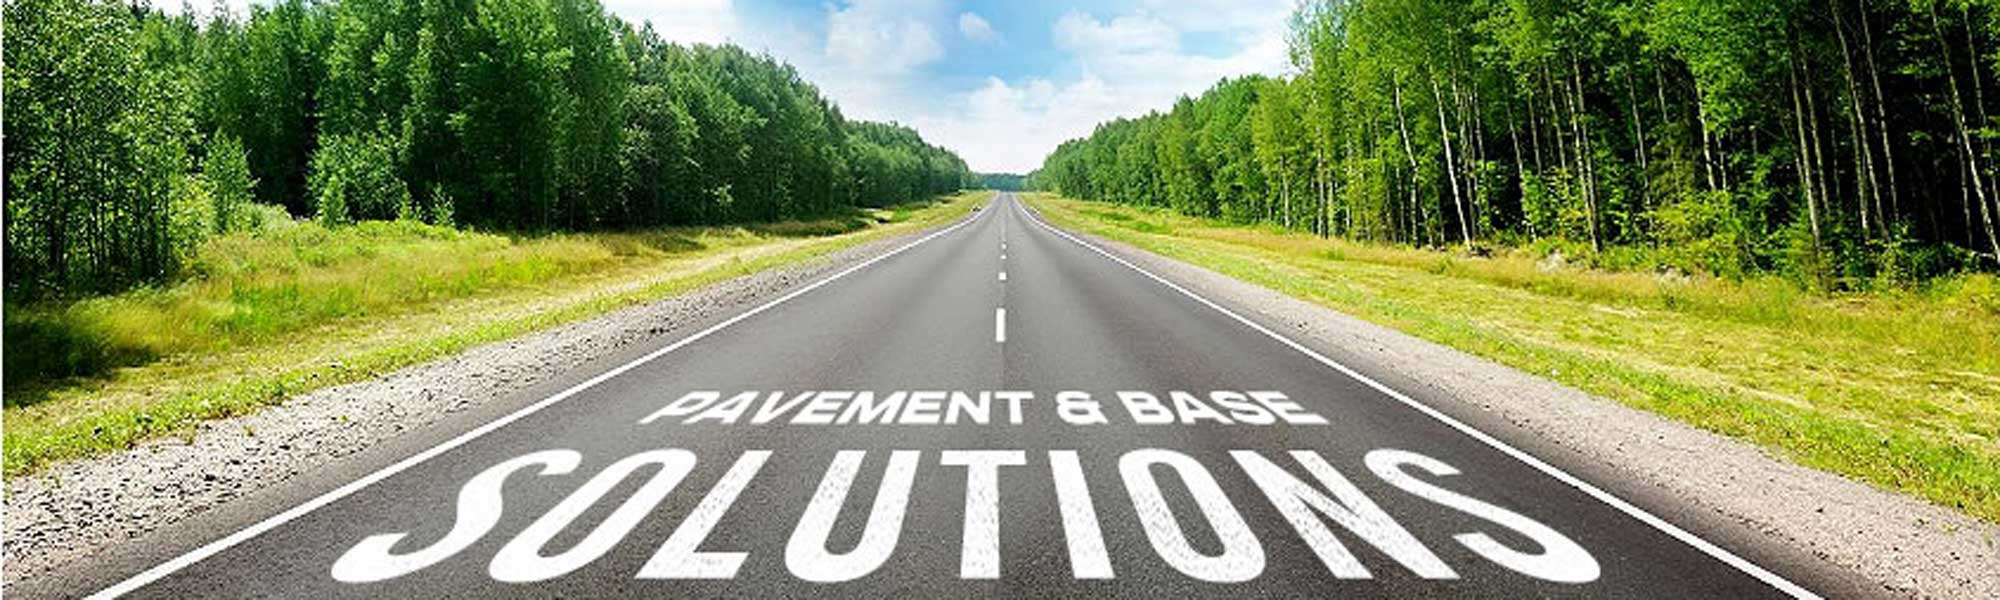 pavement and base solutions